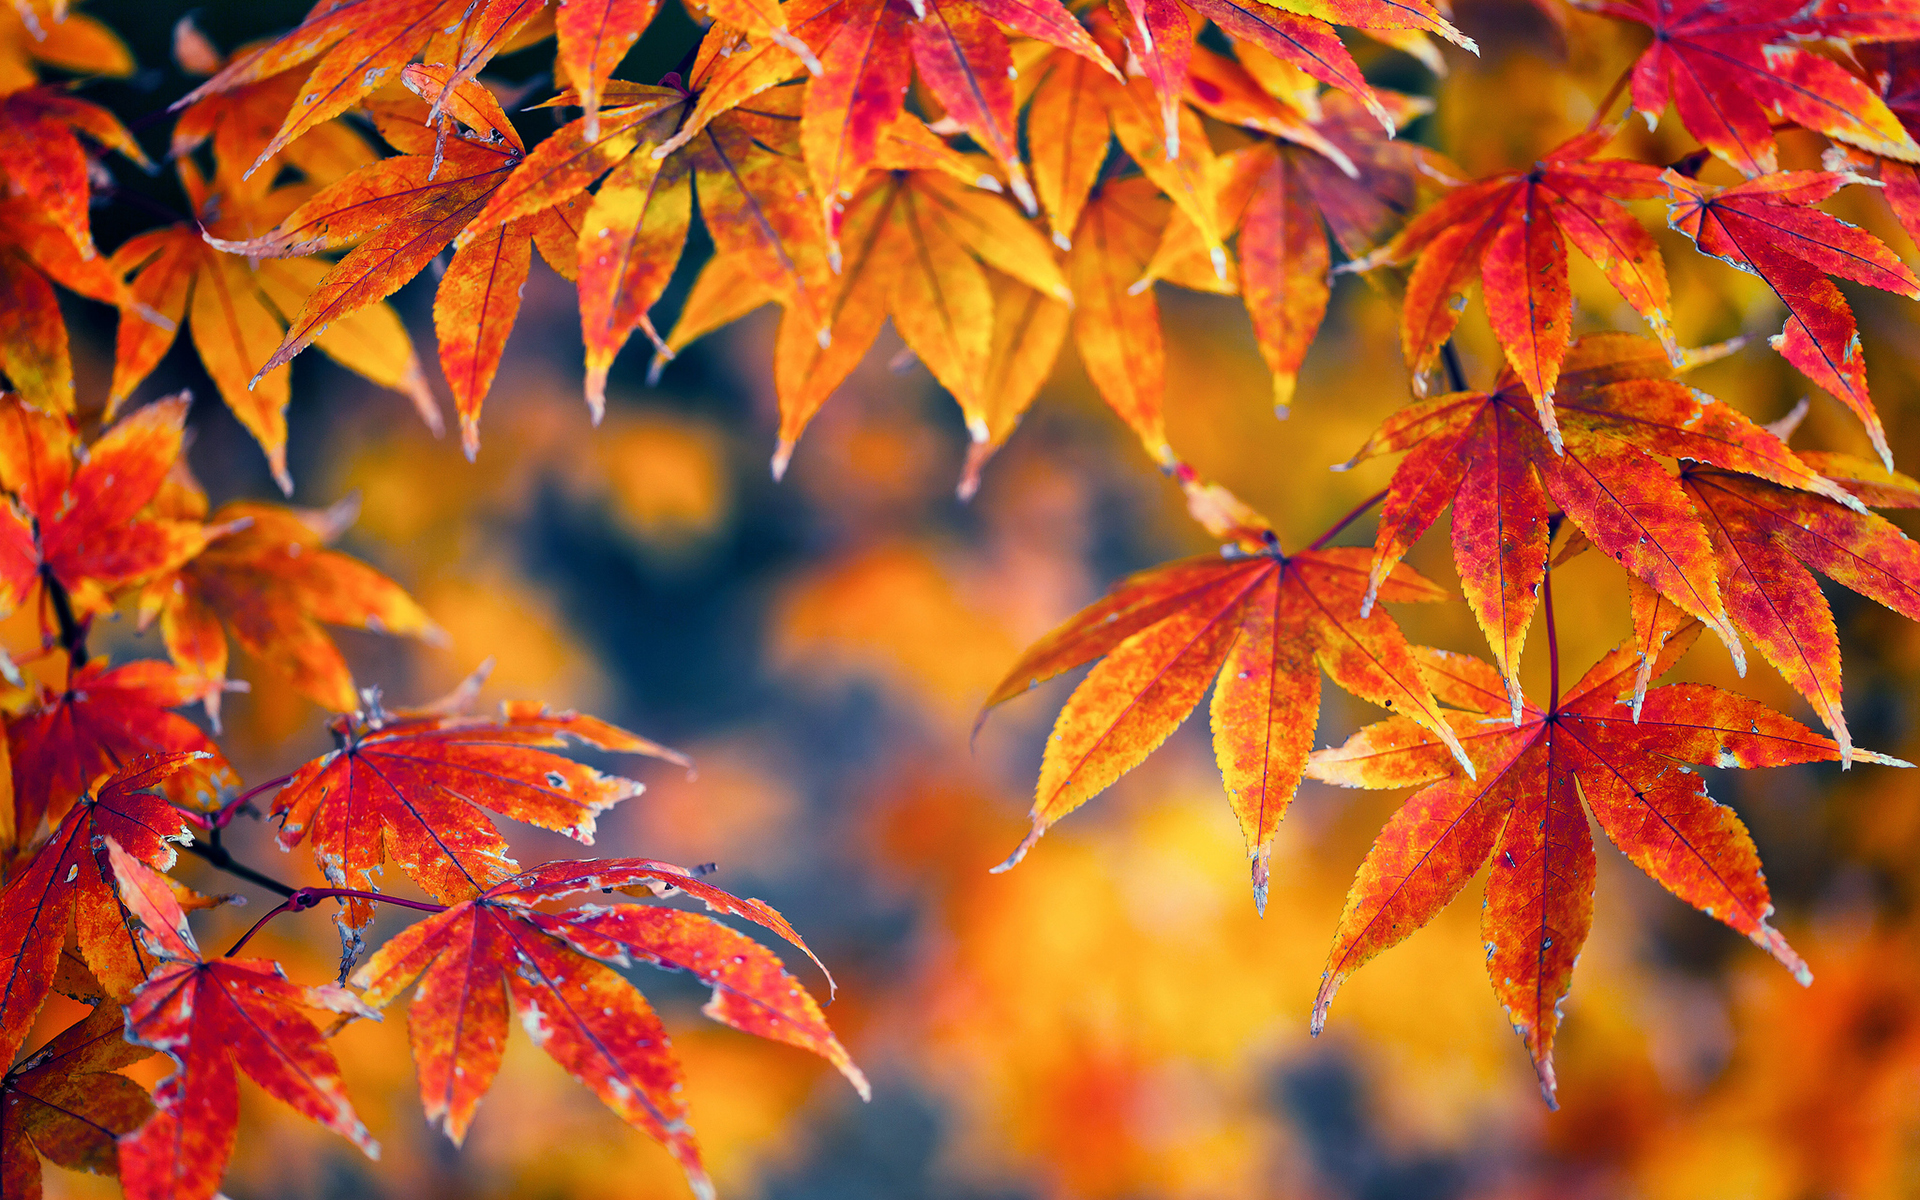 Fall Foliage Backgrounds Download 1920x1200